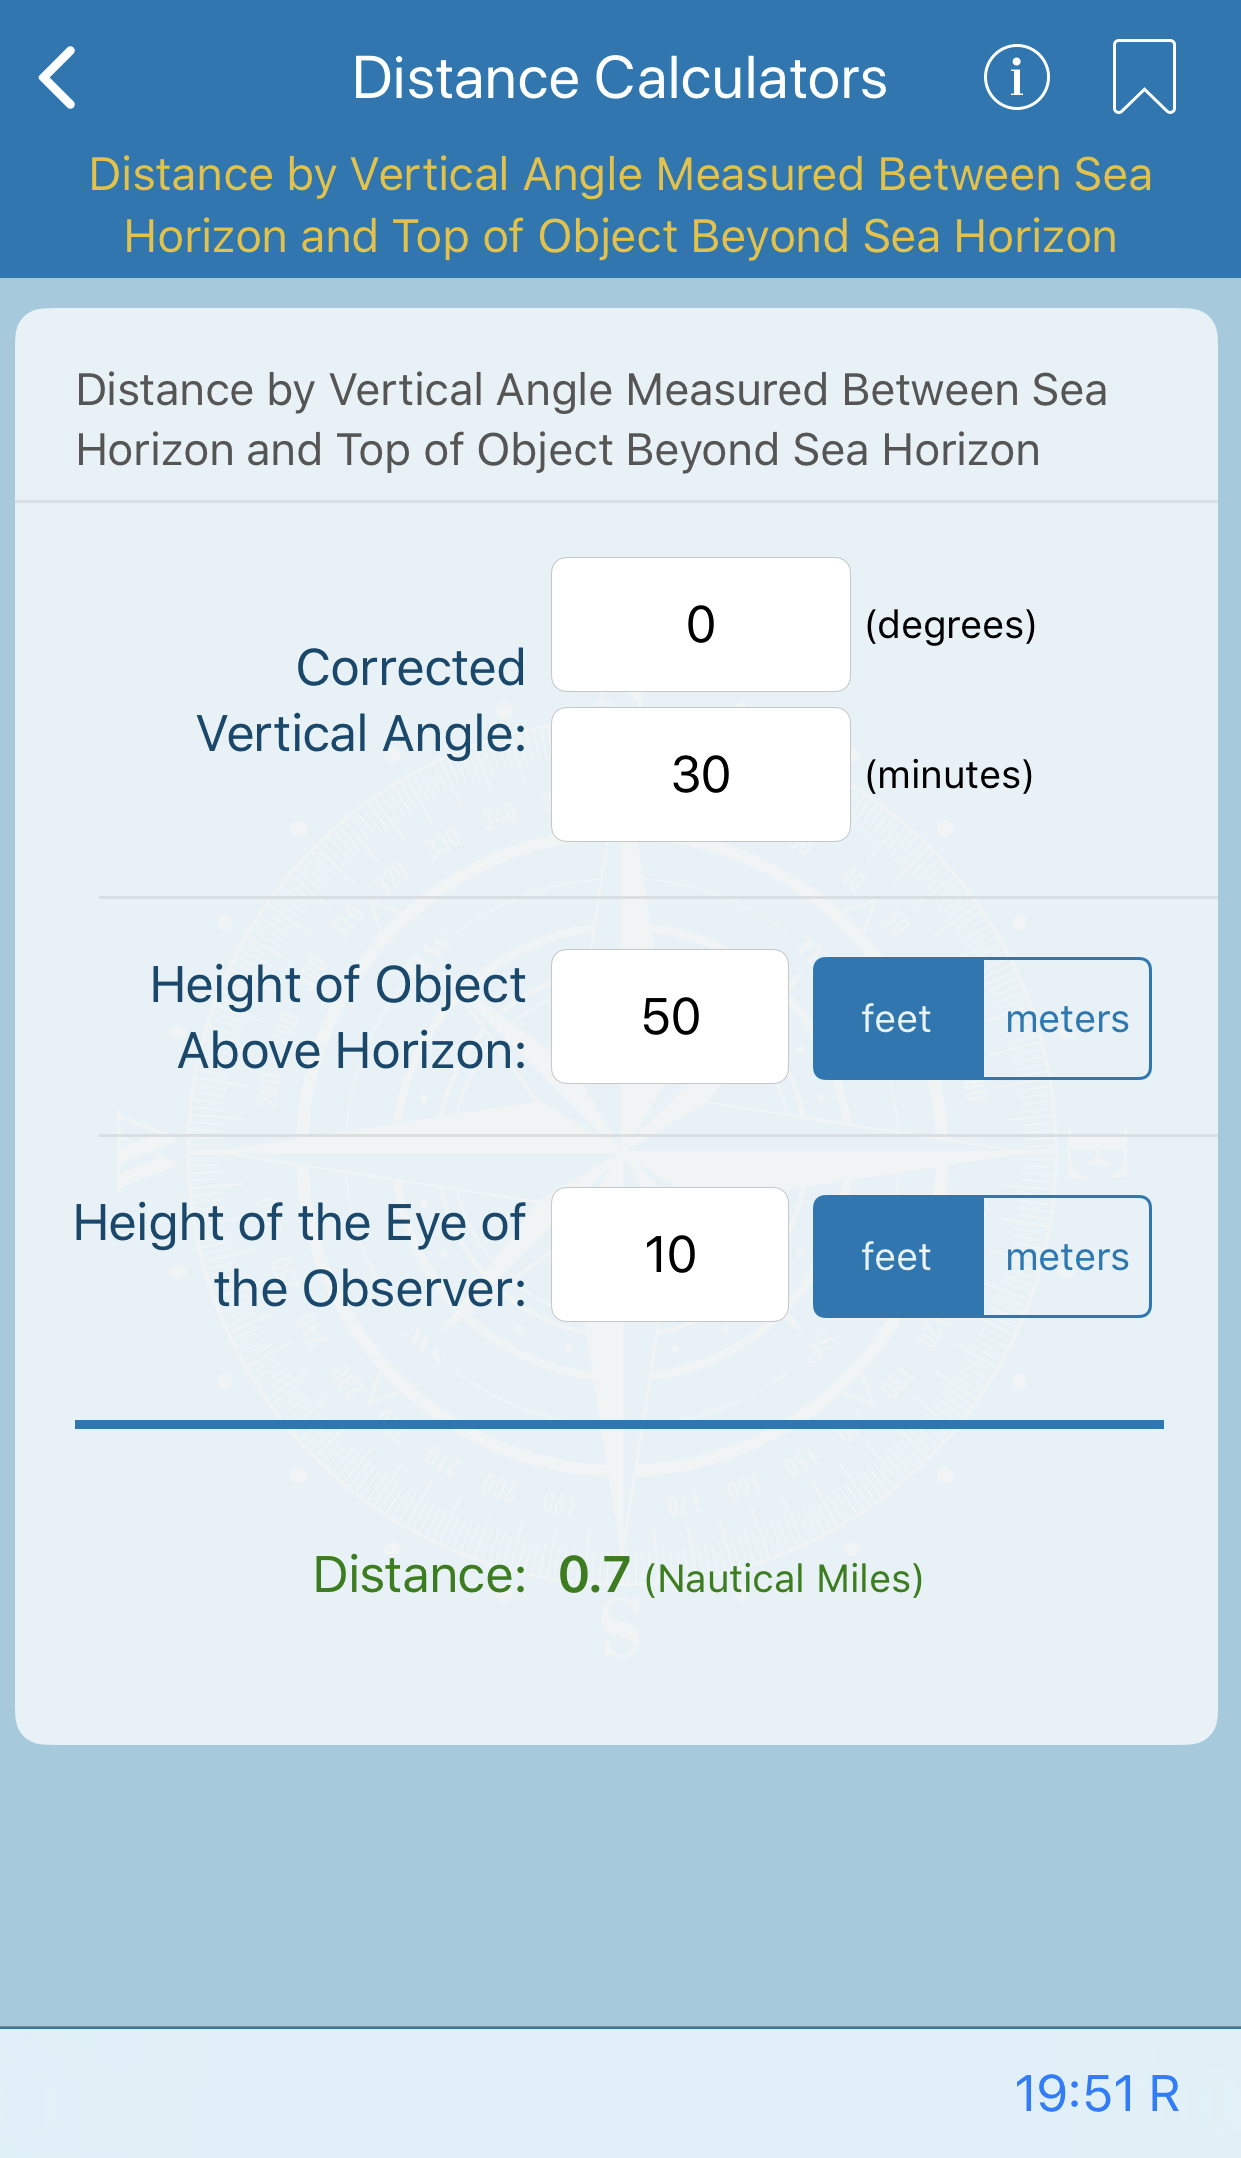 Distance by Vertical Angle Measured Between Sea Horizon and Top of Object Beyond Sea Horizon